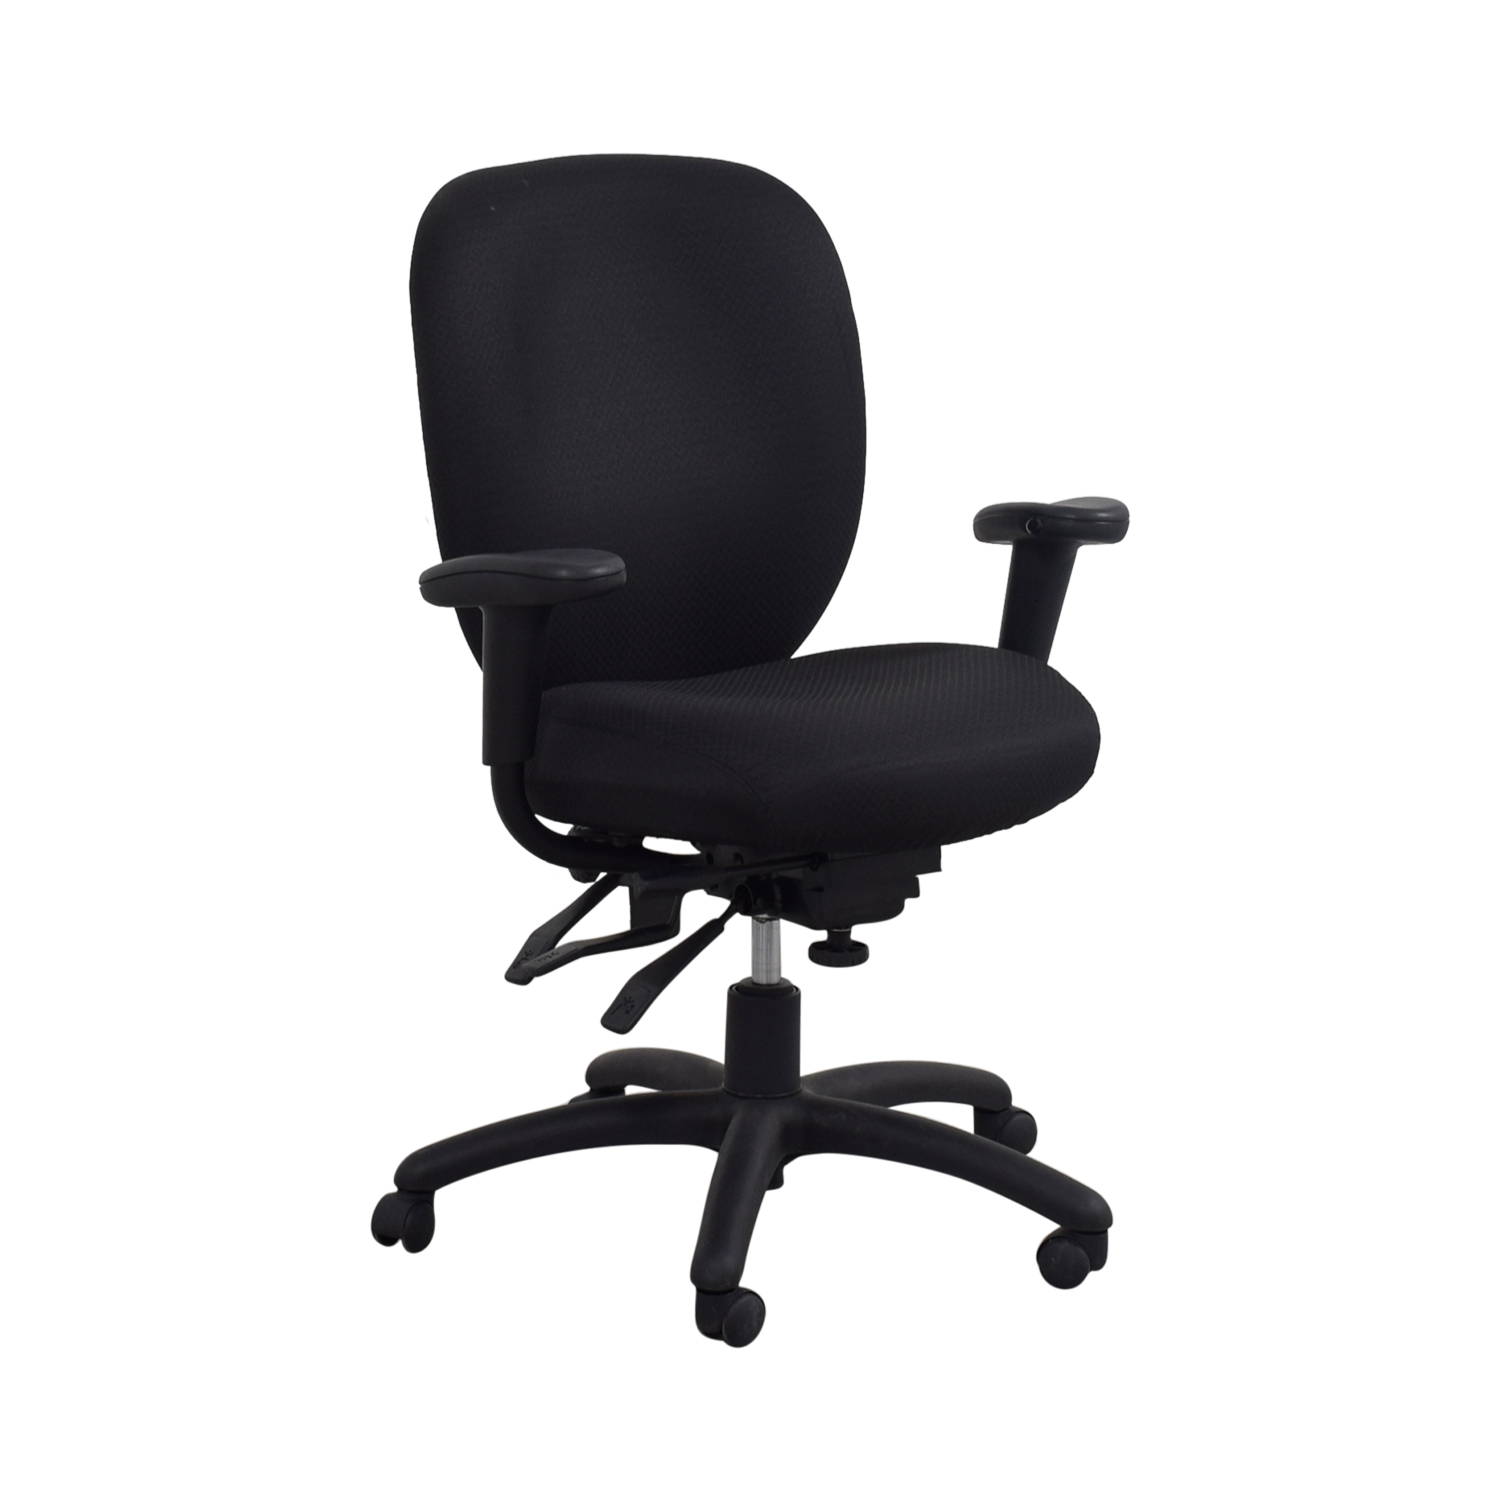 Offices to Go Offices to Go Black Quilt Office Chair BLACK